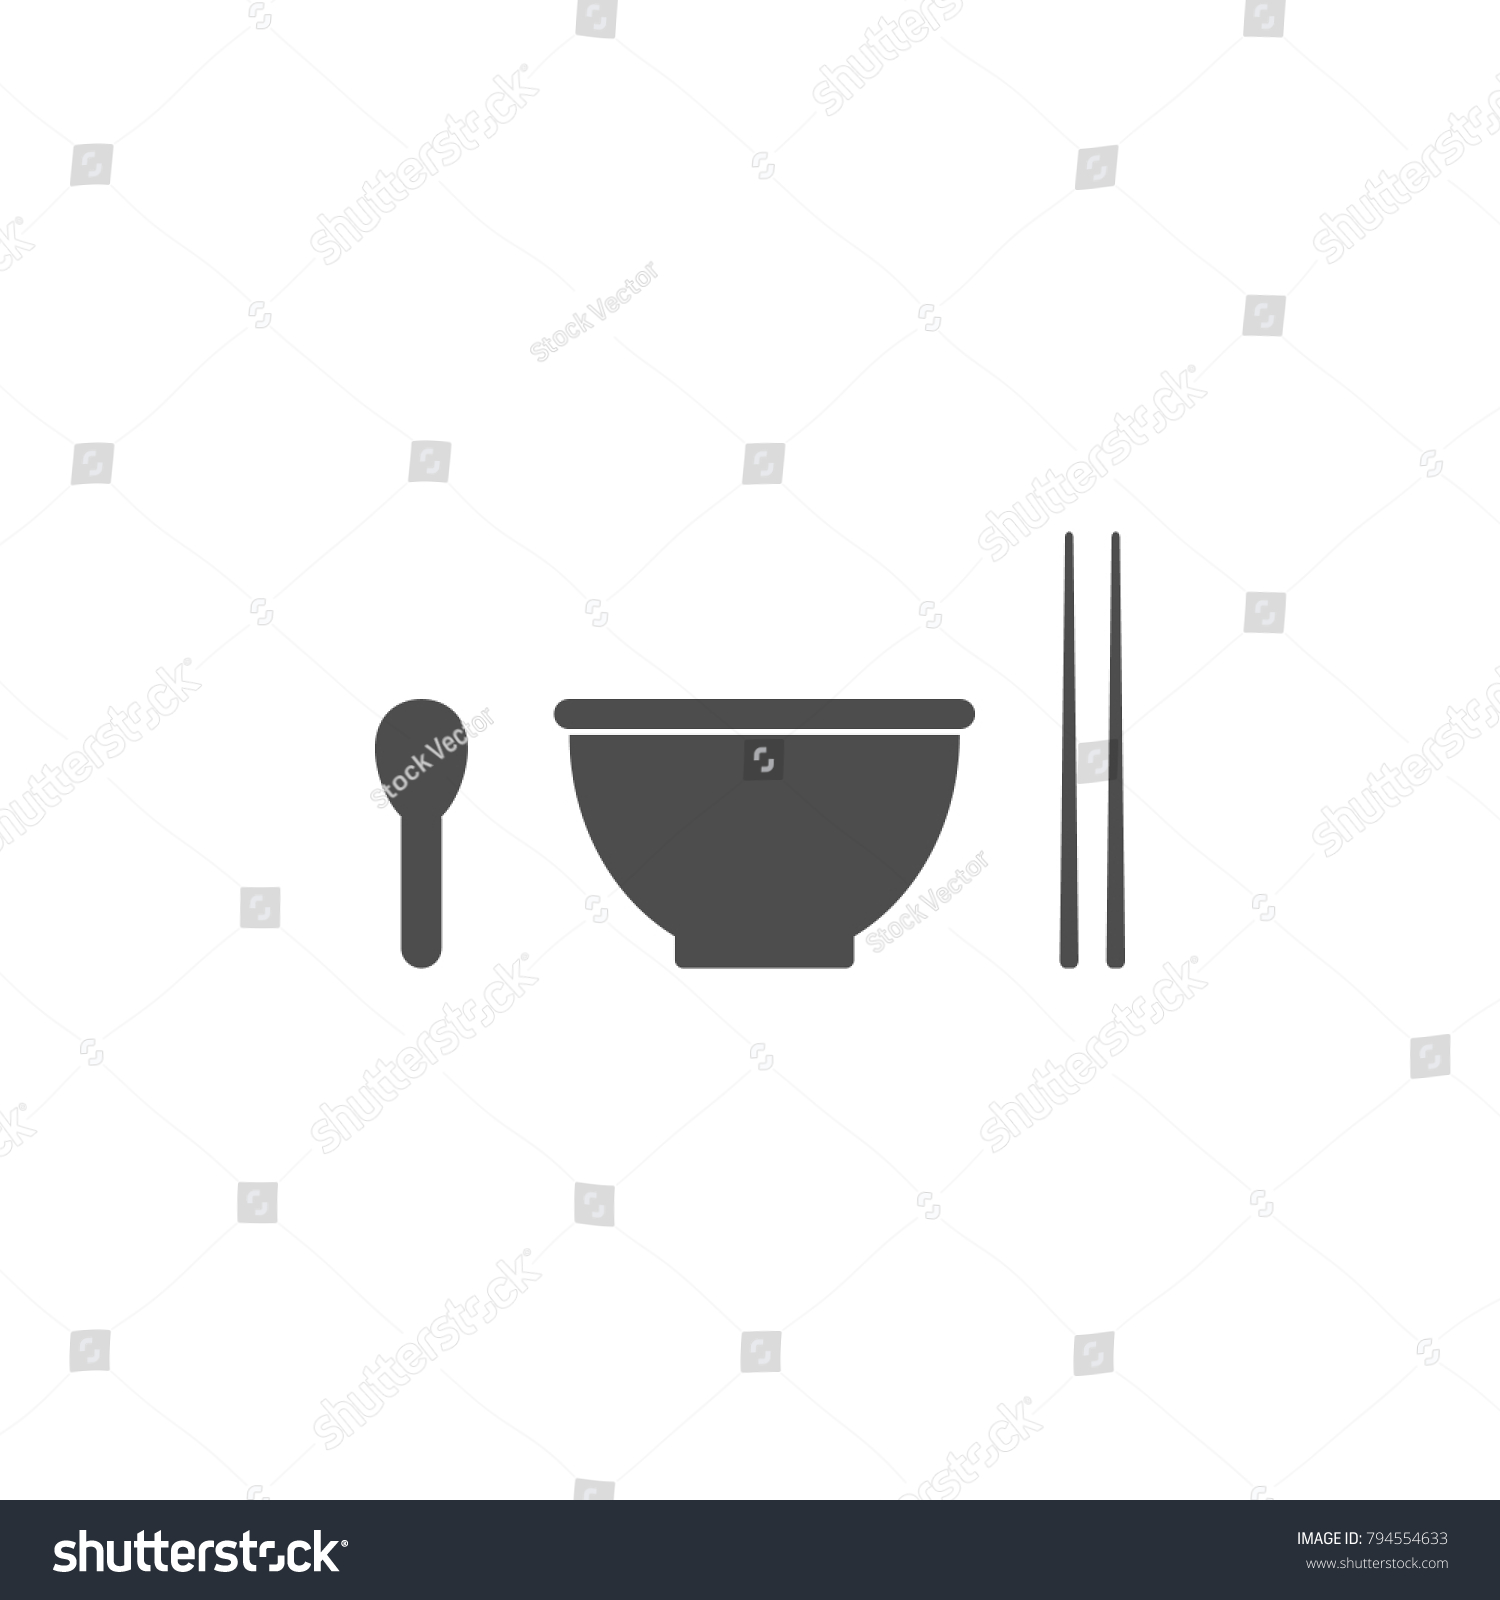 Spoon cup sticks icon elements chinese stock illustration elements of chinese culture icon premium quality graphic buycottarizona